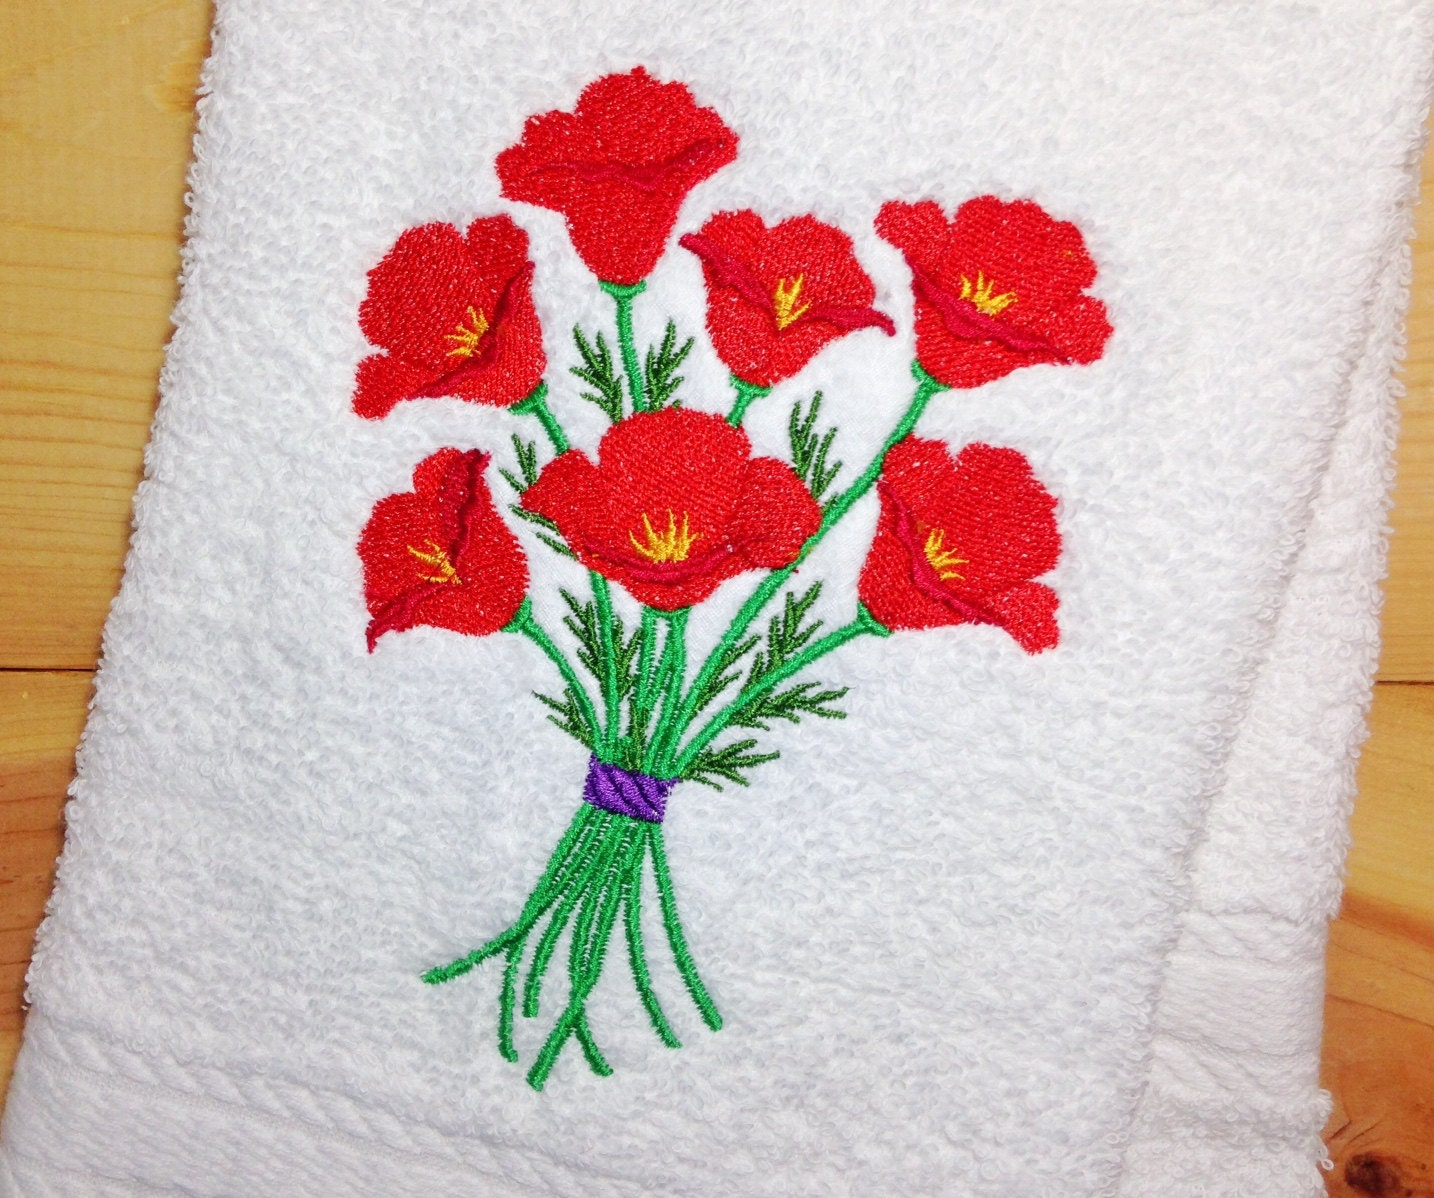 Red Poppy Towels Embroidered Poppies Hand By Twistedstitches13